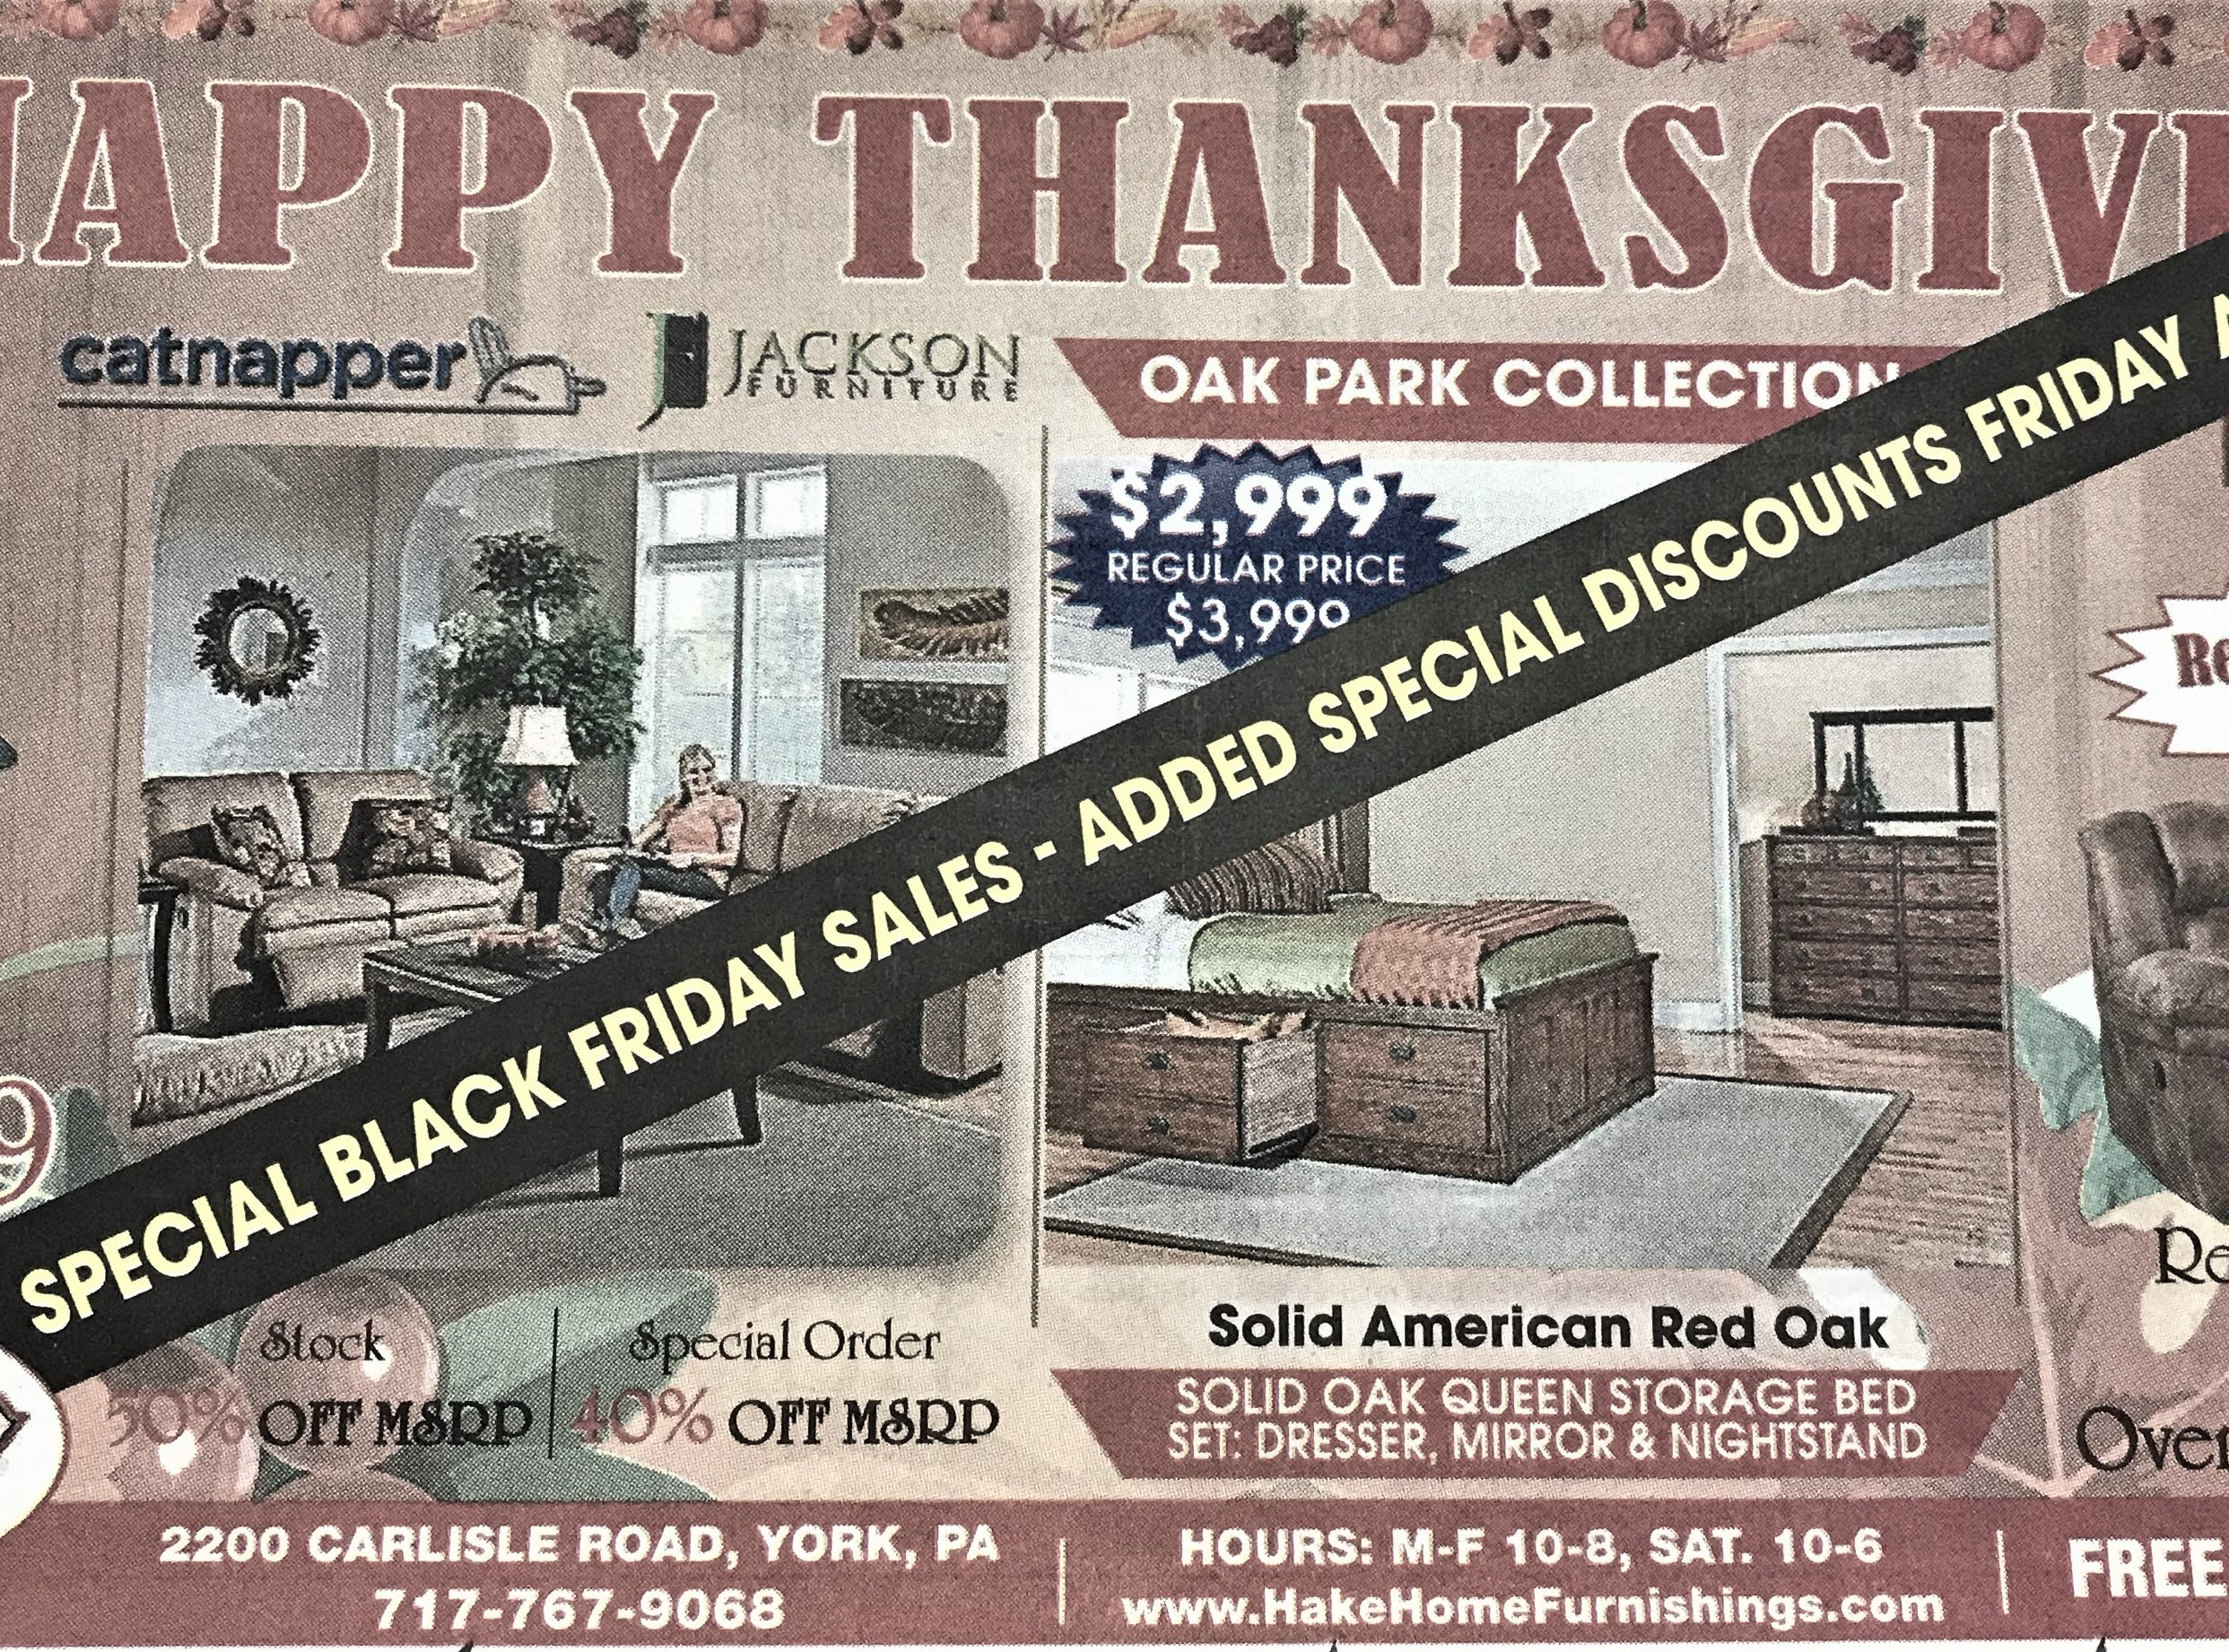 A holiday ad for Hake's Home Furnishings that appeared in the York Daily Record on Wednesday, November 21, 2018.